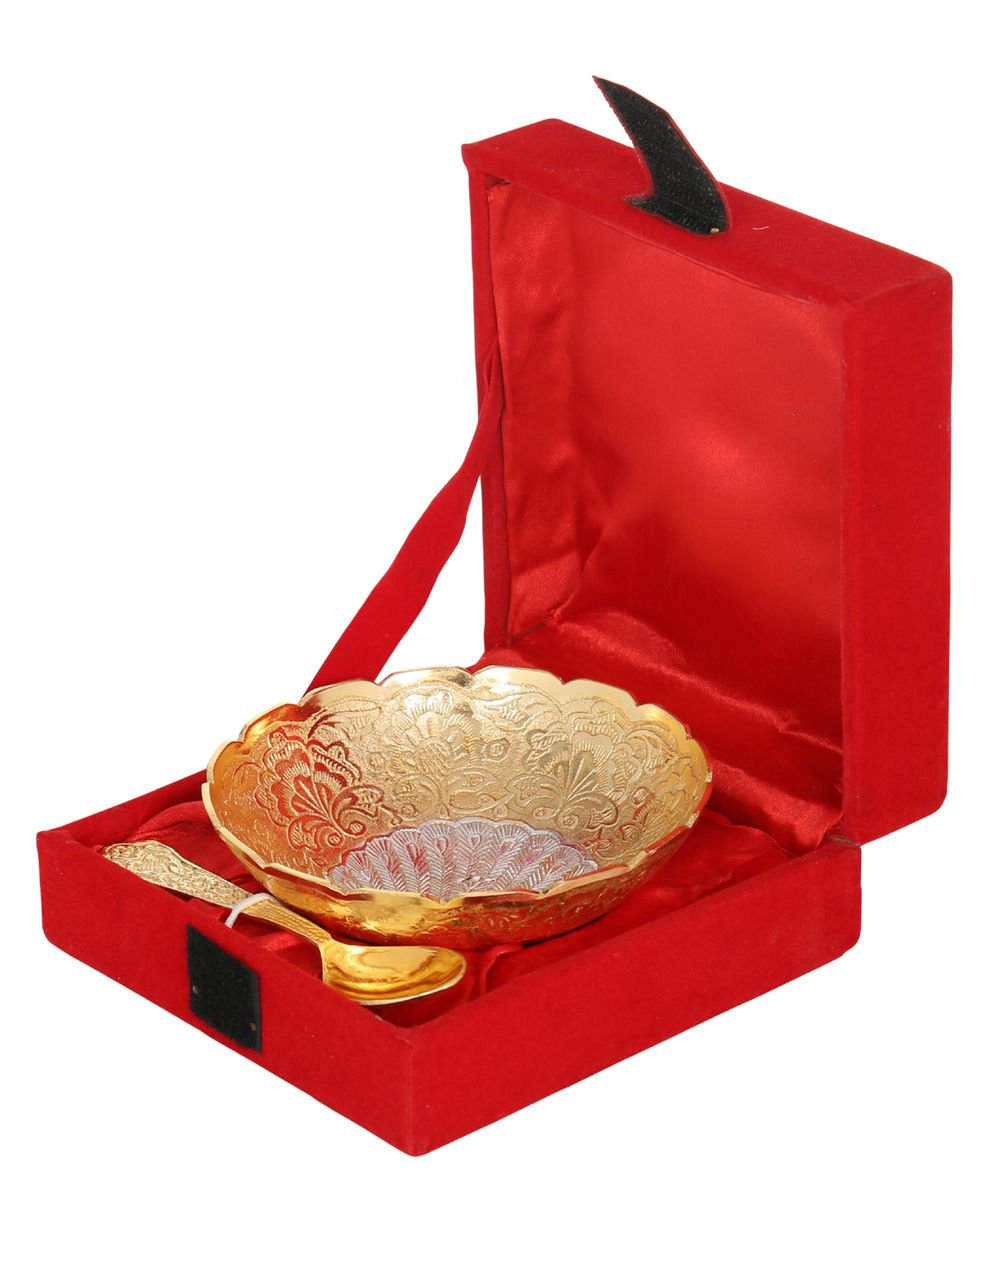 Silver Gift Items For Wedding: Silver Indian Wedding Gifts - Google Search